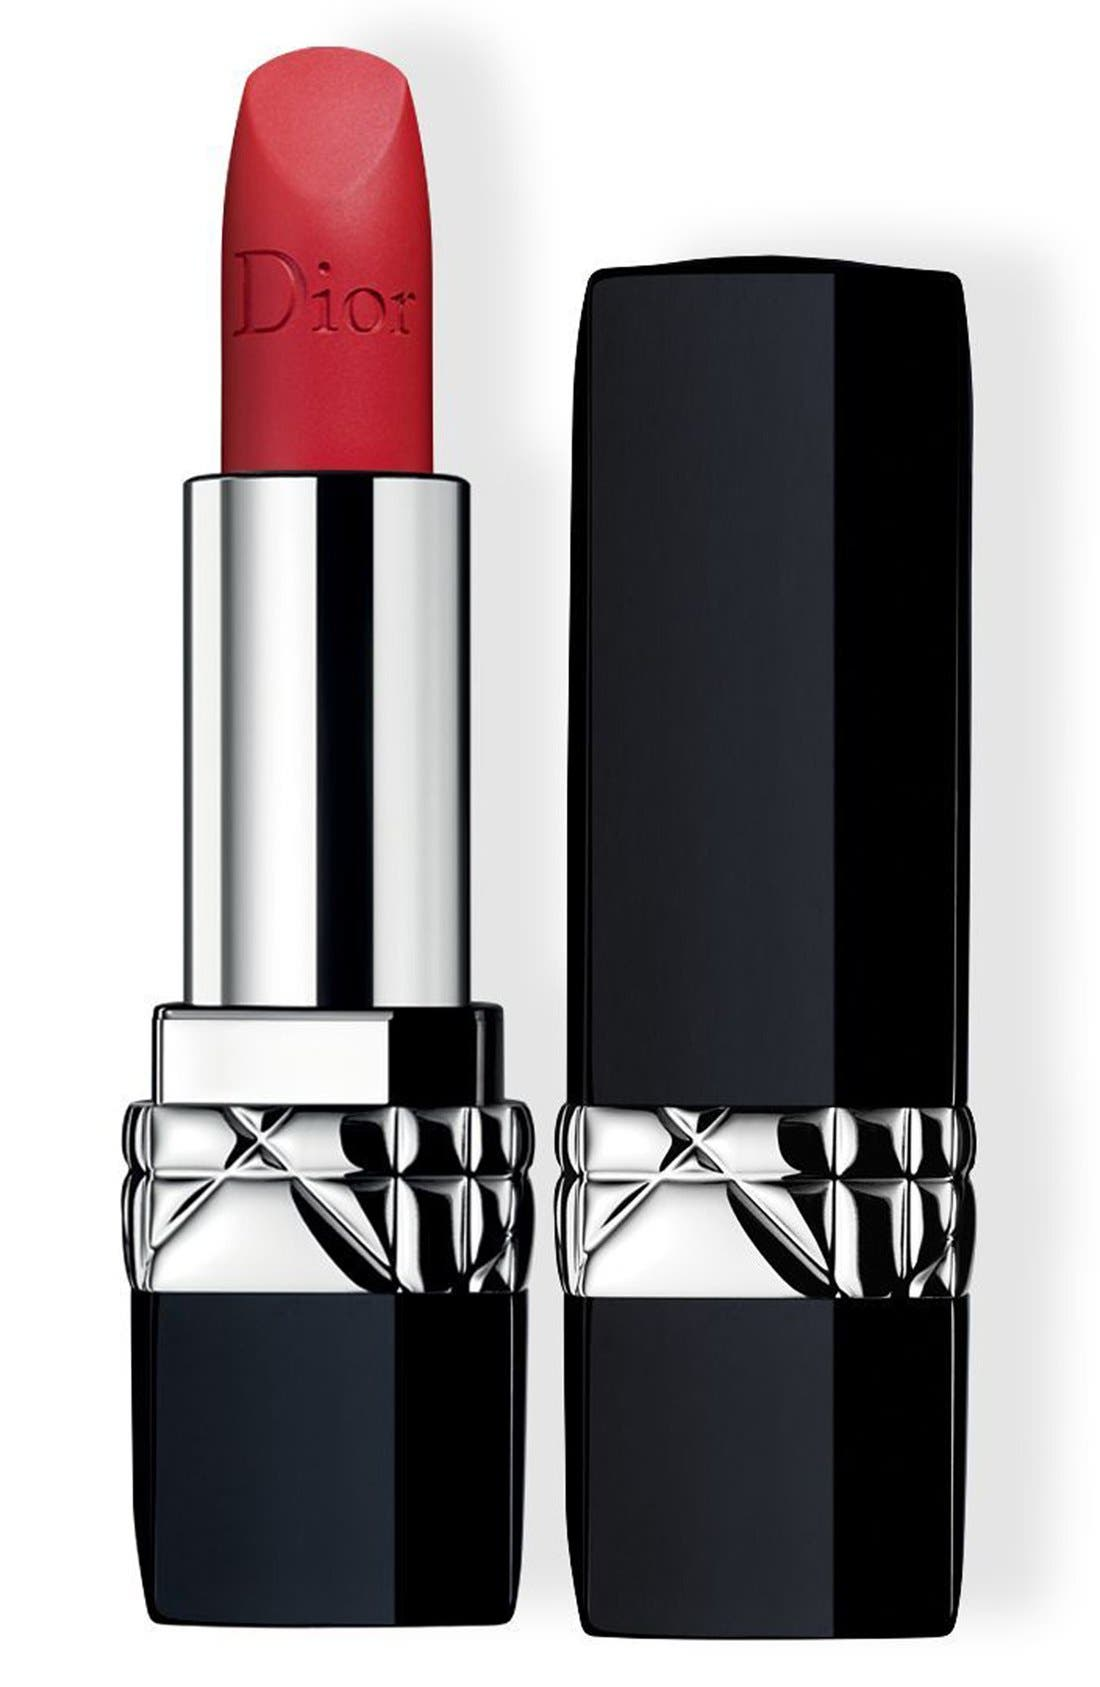 Dior Couture Color Rouge Dior Lipstick - 999 Matte